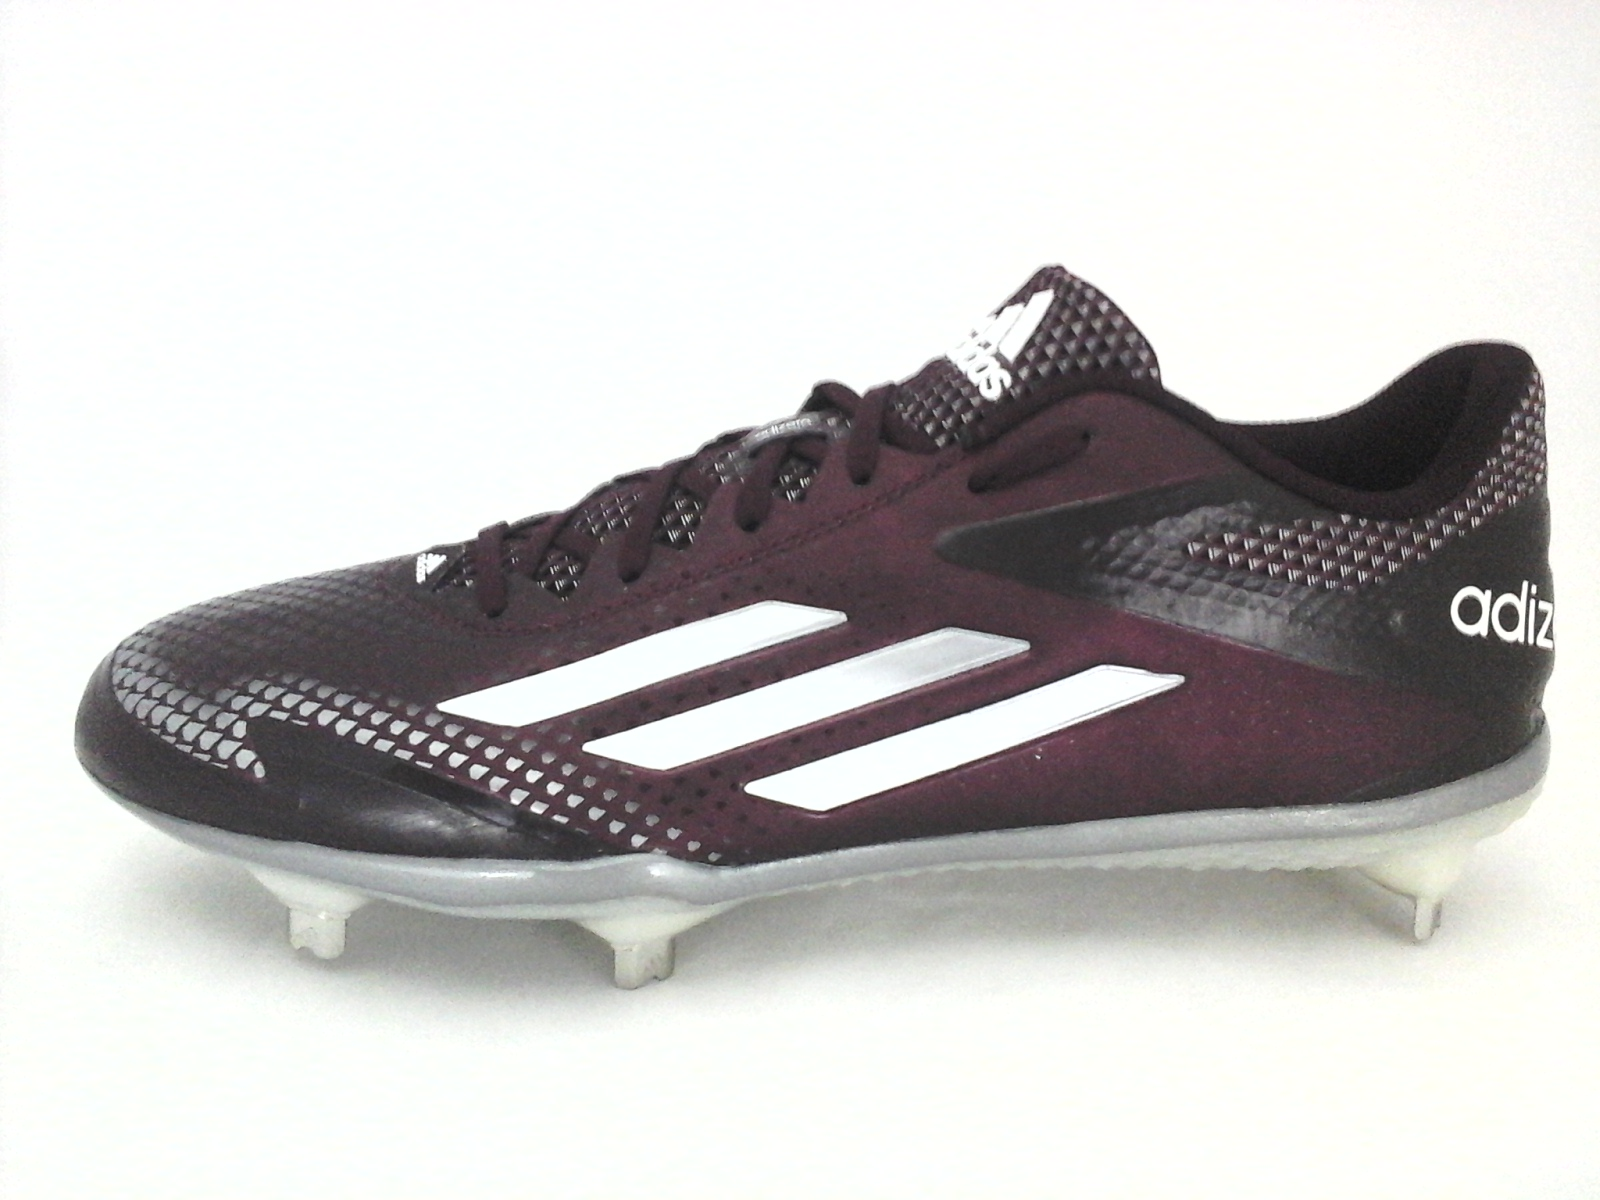 55eda2f72ea8 Details about ADIDAS ADIZERO Afterburner 2.0 Metal Baseball Cleats Maroon  S84705 Mens US 10.5